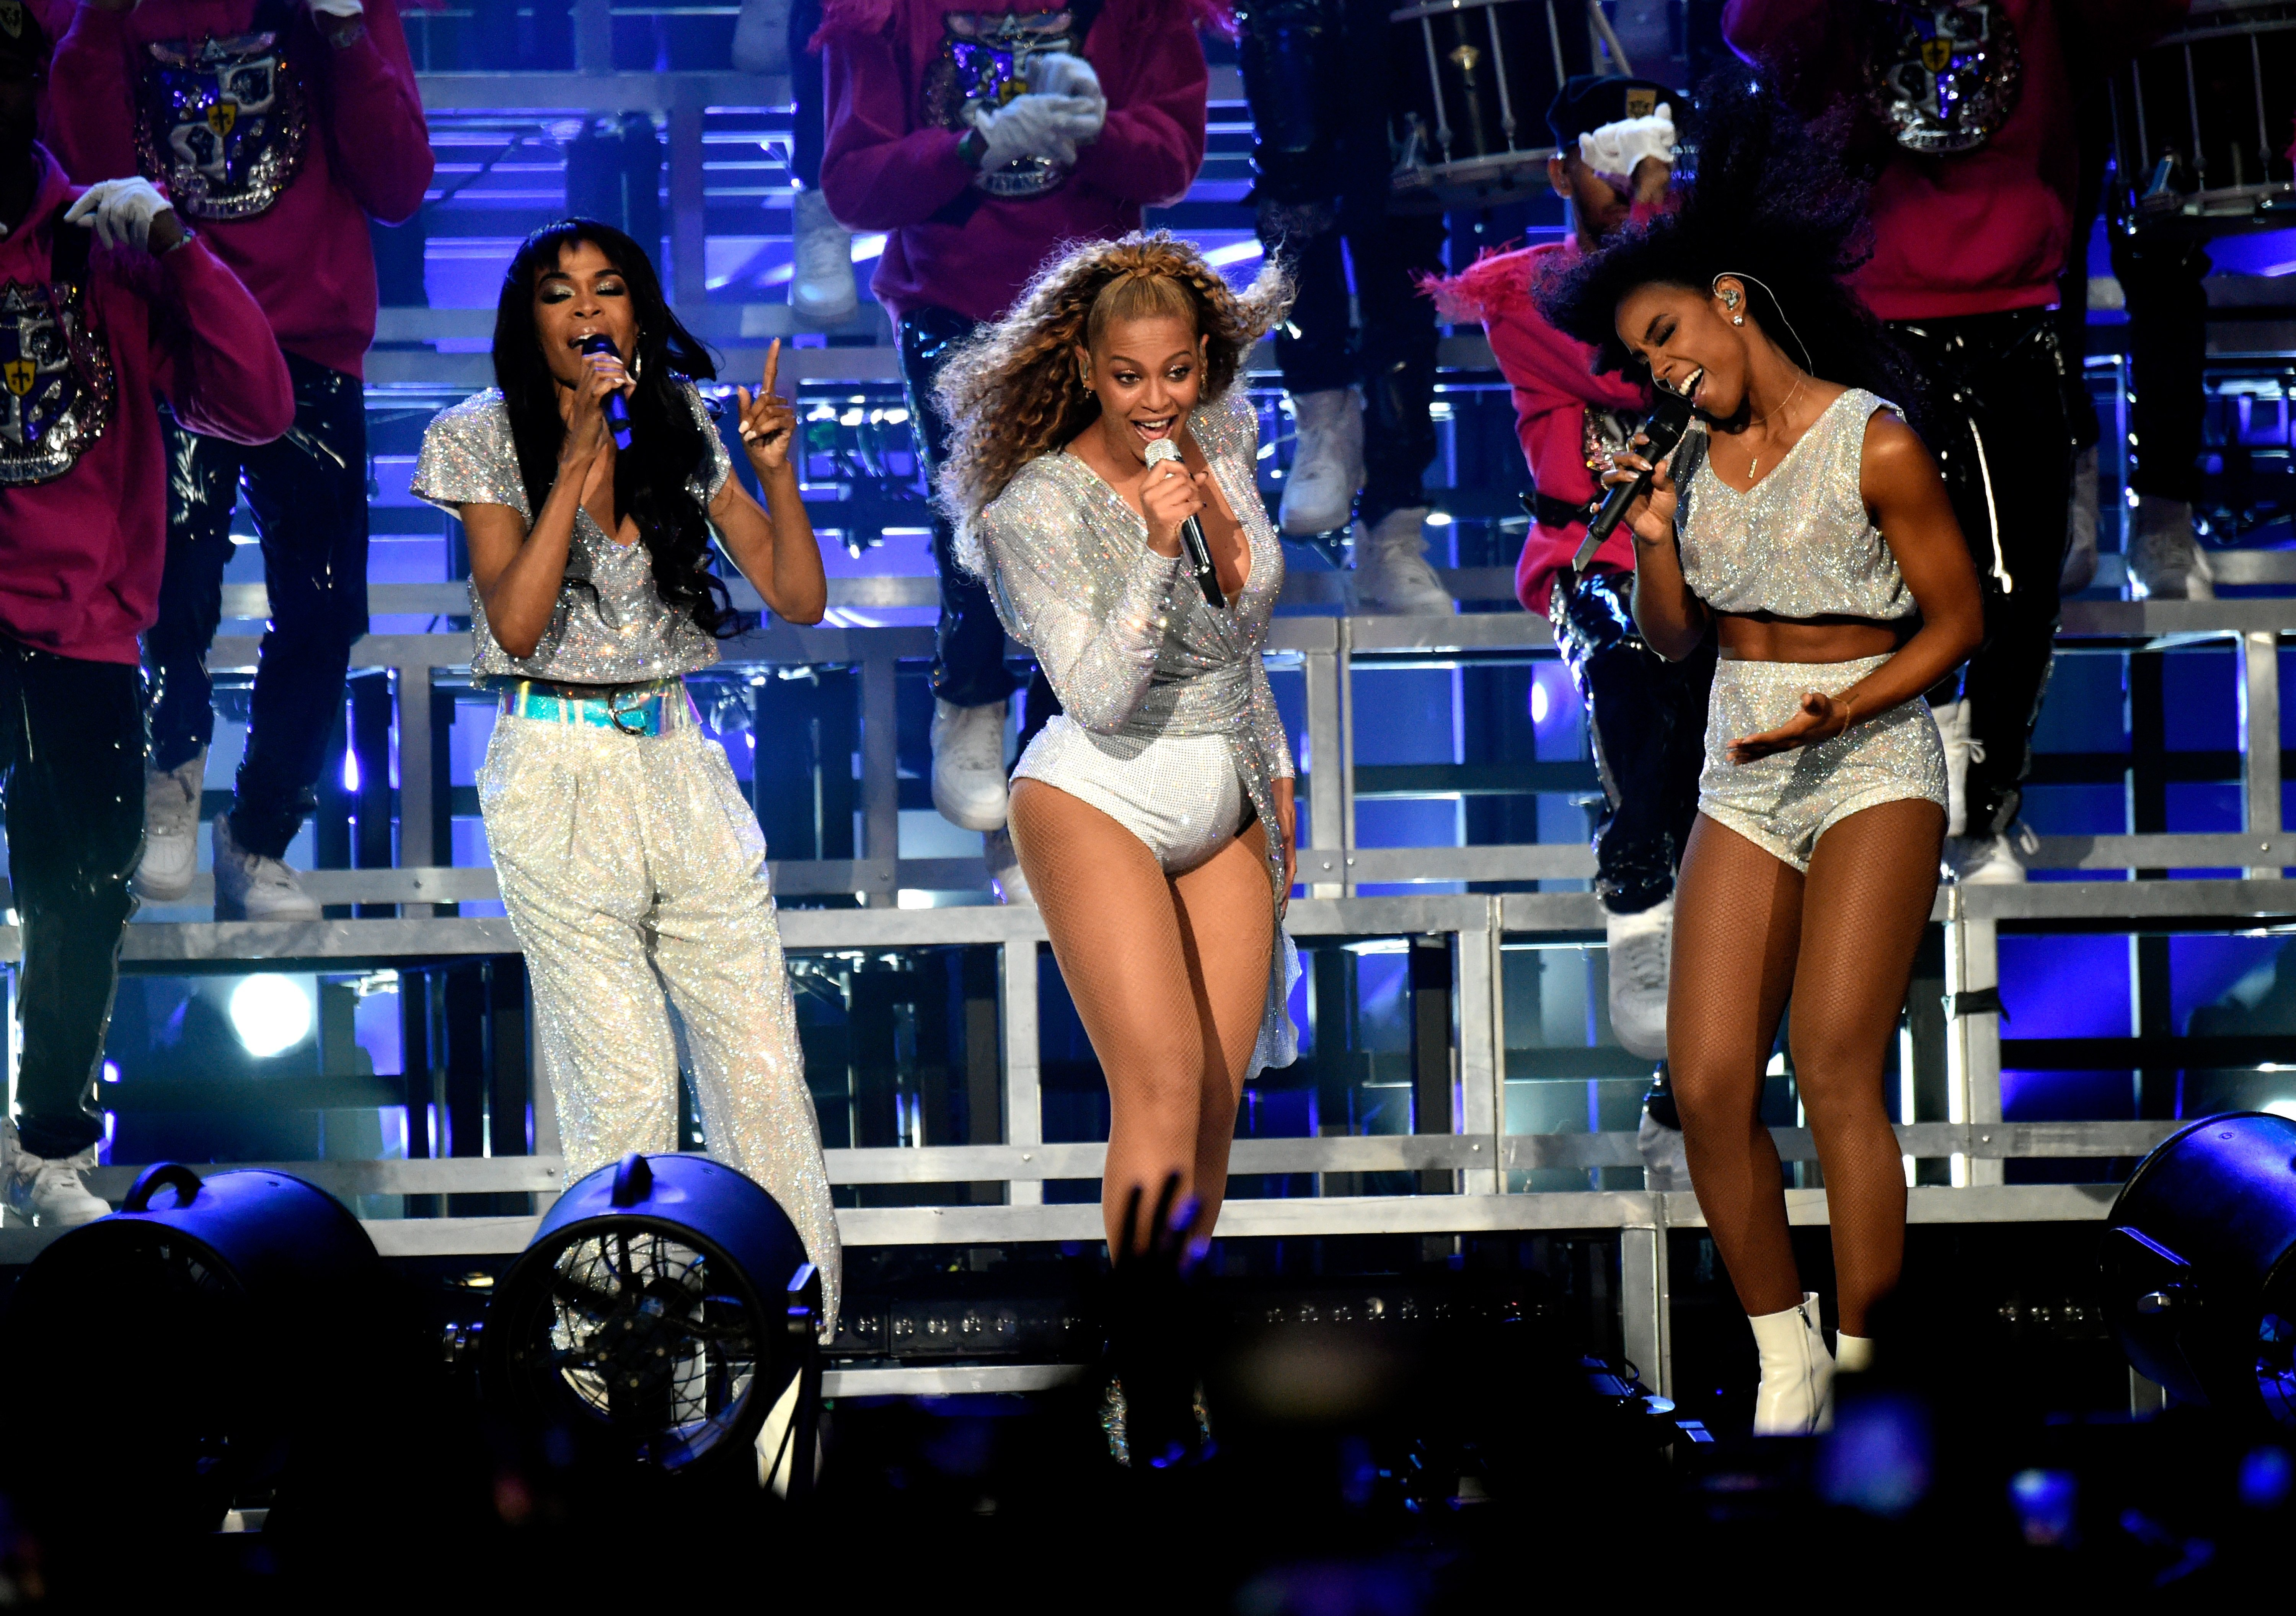 Michelle Williams, Beyoncé Knowles and Kelly Rowland of Destiny's Child perform onstage during the 2018 Coachella Valley Music And Arts Festival on April 21, 2018. | Photo: GettyImages